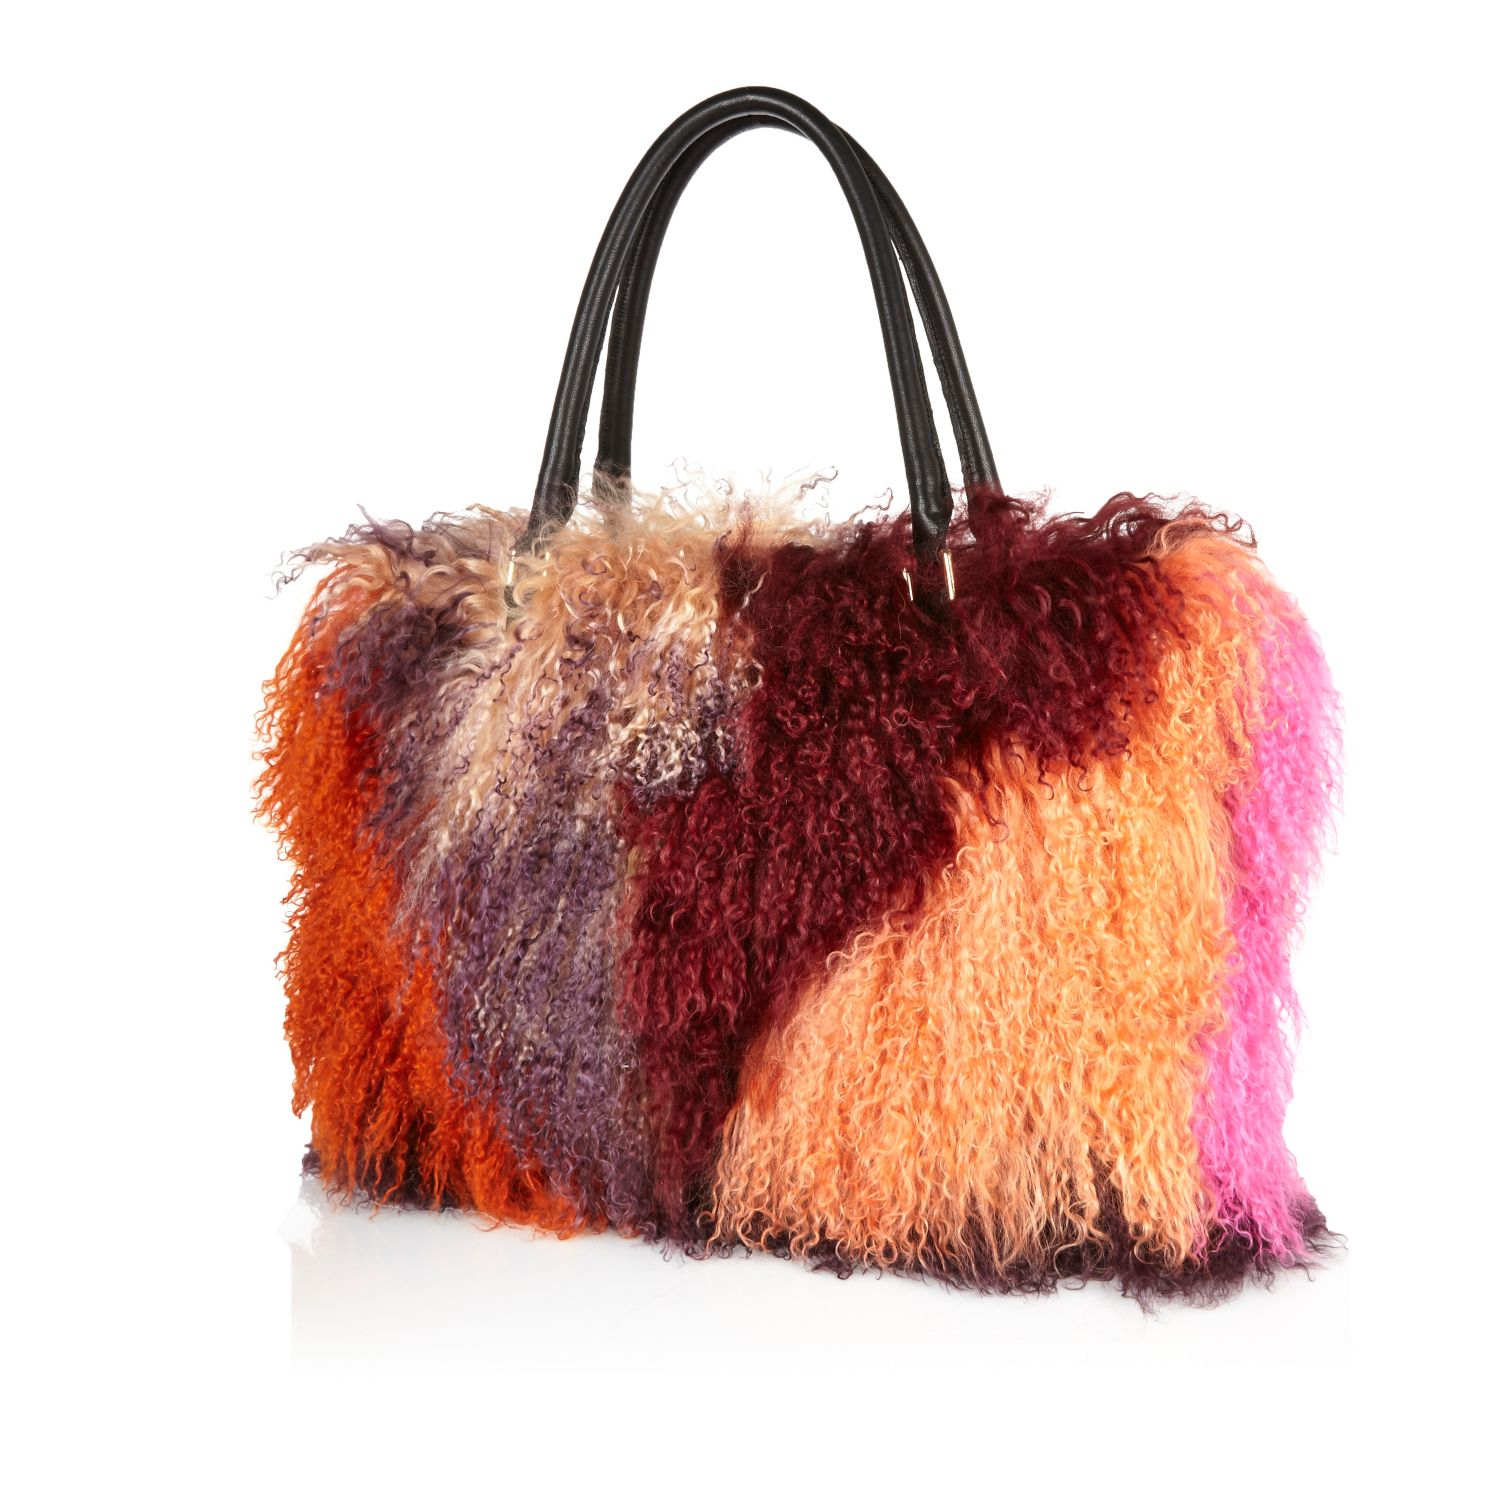 River Island Pink Mongolian Fur Handbag in Pink - Lyst 48653fe12a